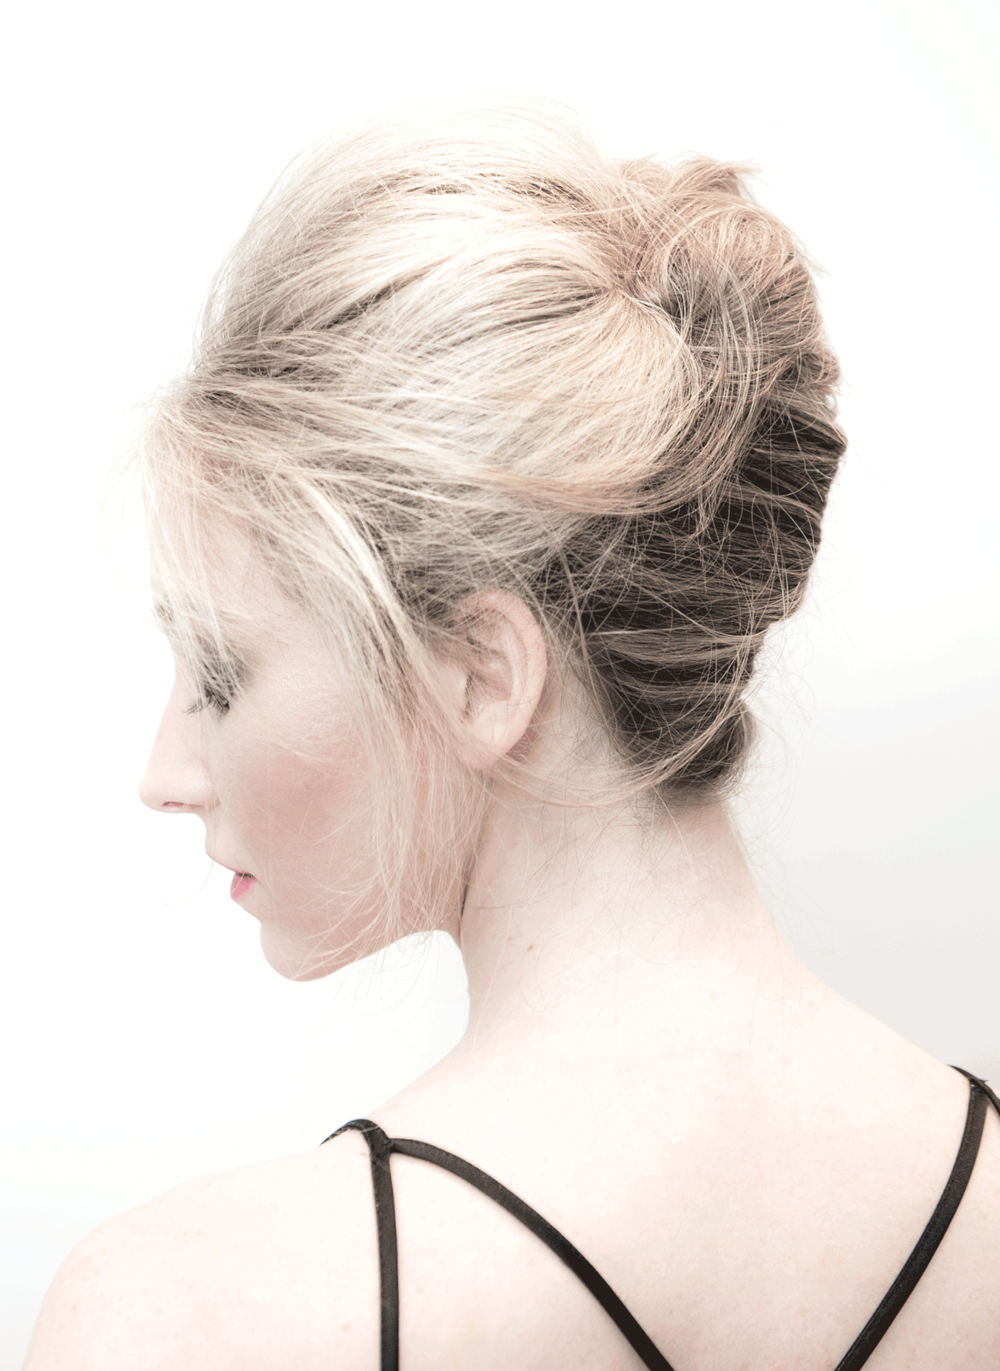 DSC_8107---Blonde-Hair-Web.png